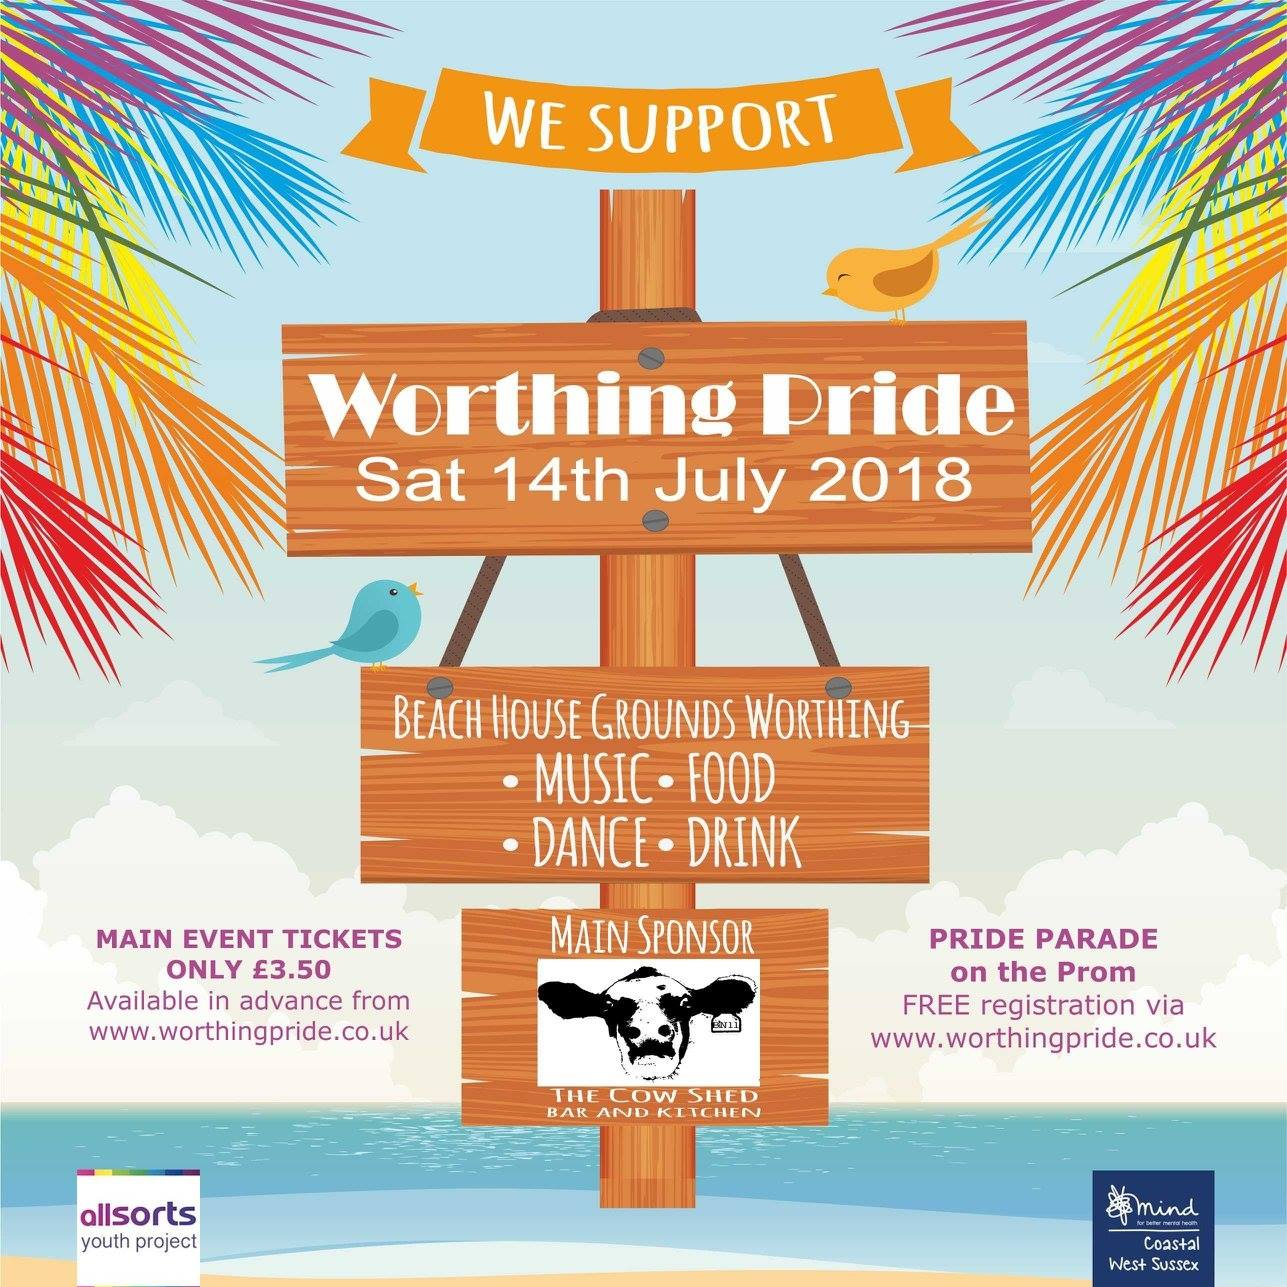 Worthing Pride first ever event Title Sussex Magazine www.titlesussex.co.uk